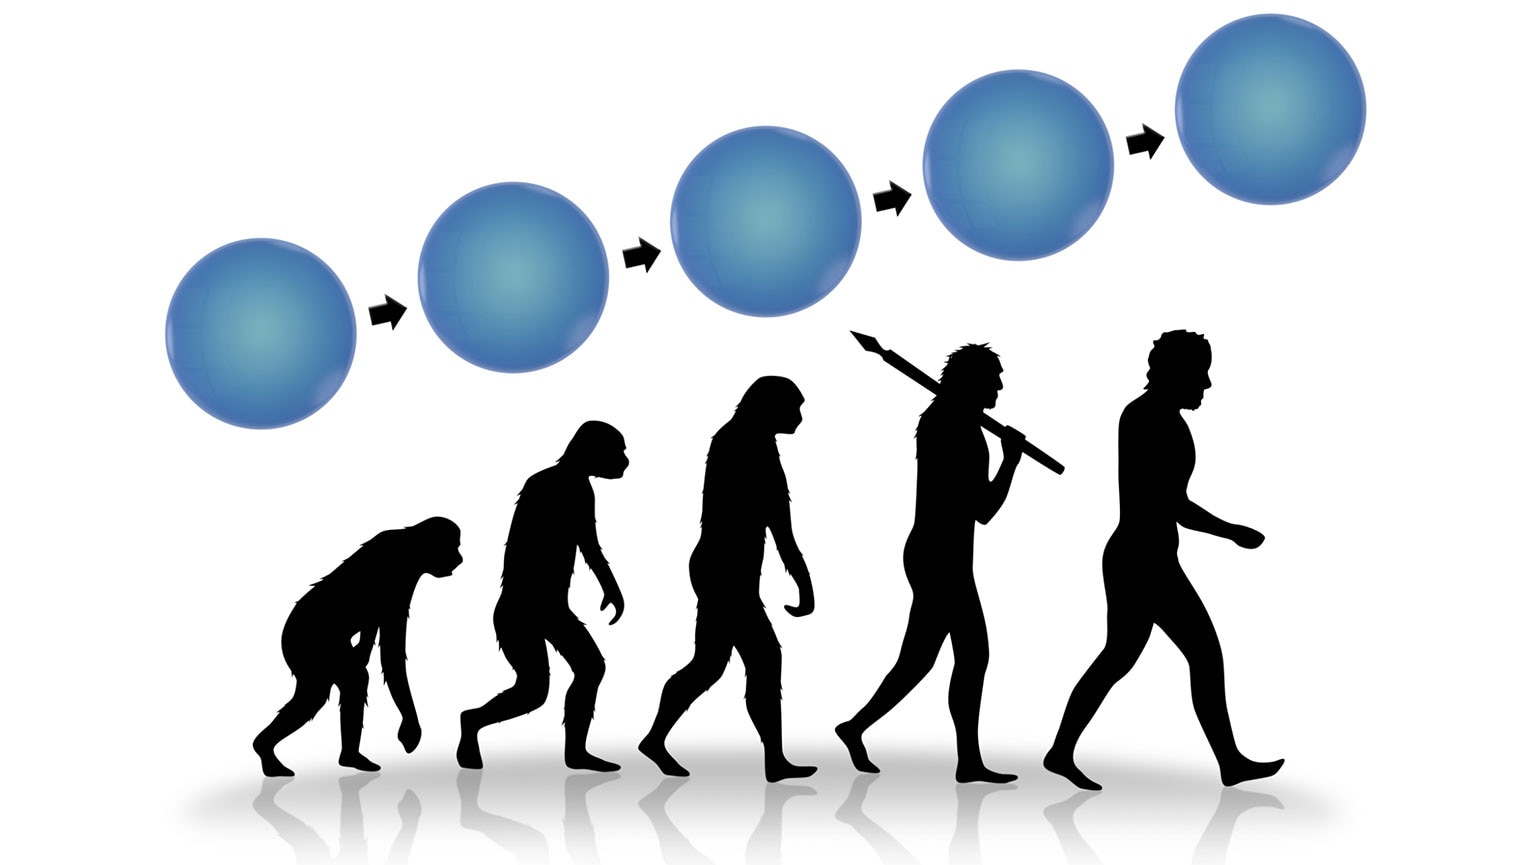 Our Accelerating Evolution